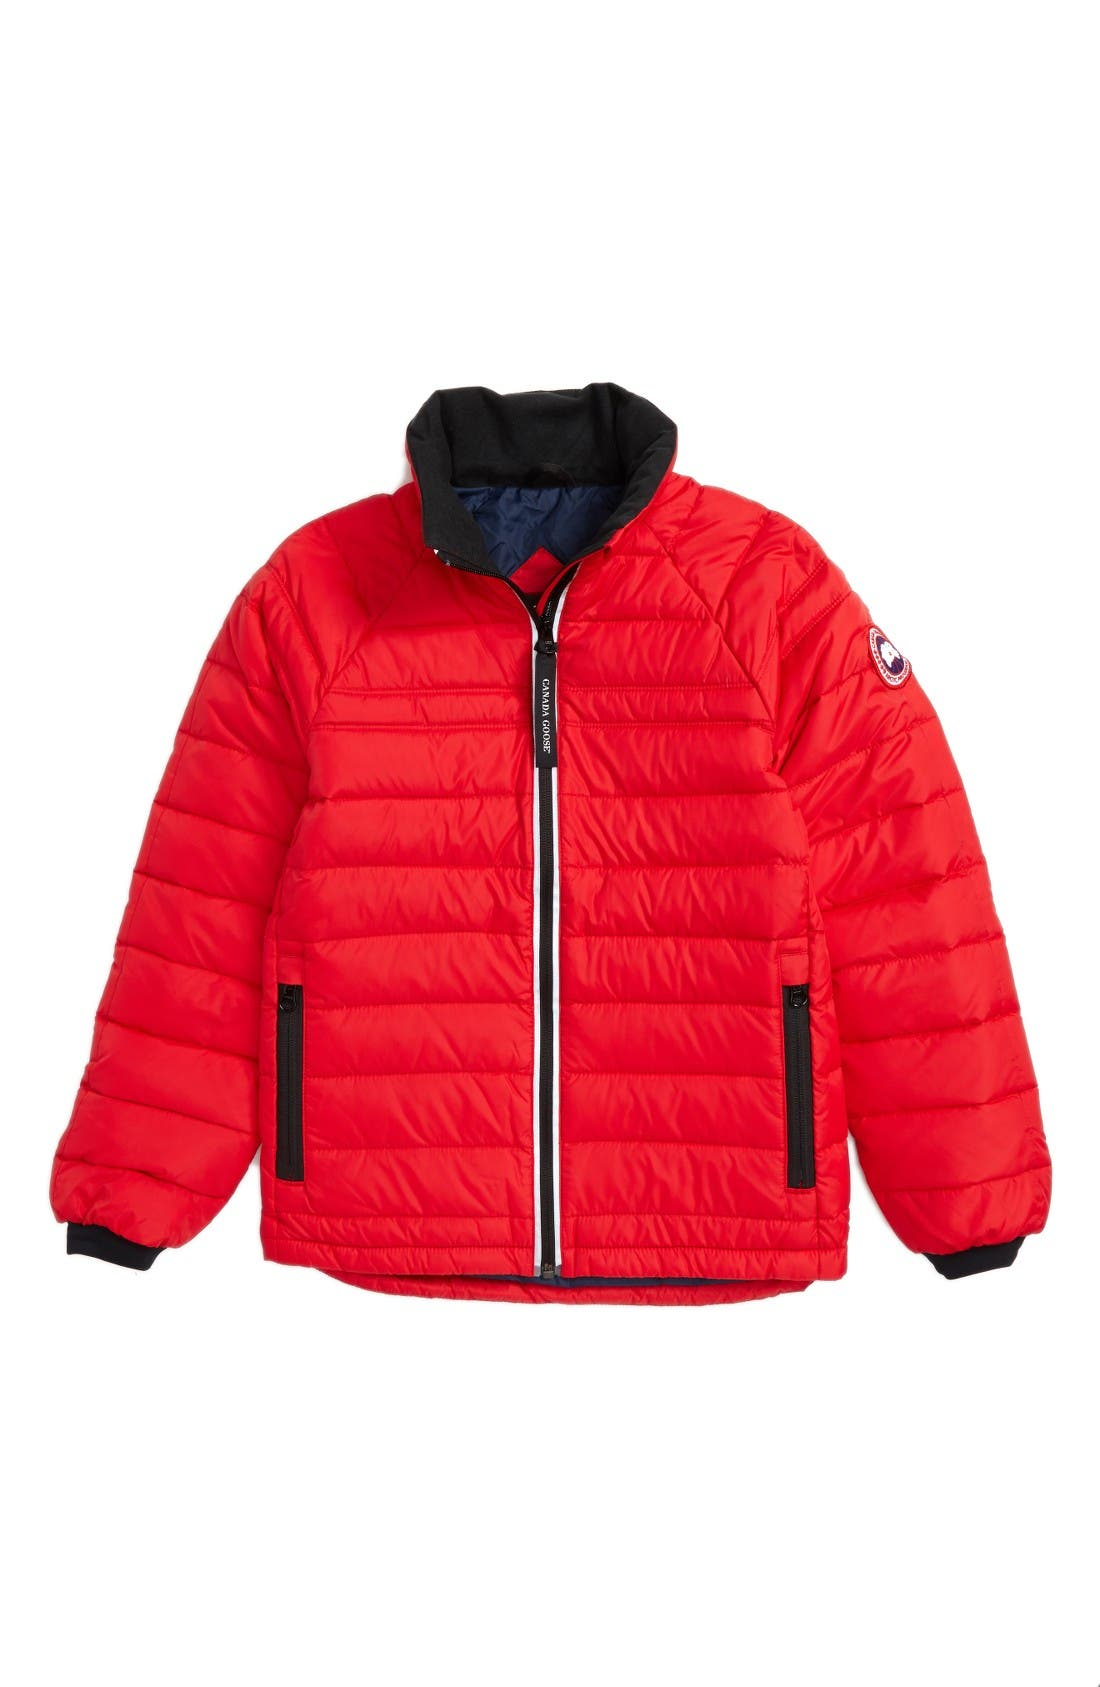 CANADA GOOSE Canda Goose Sherwood Hooded Packable Down